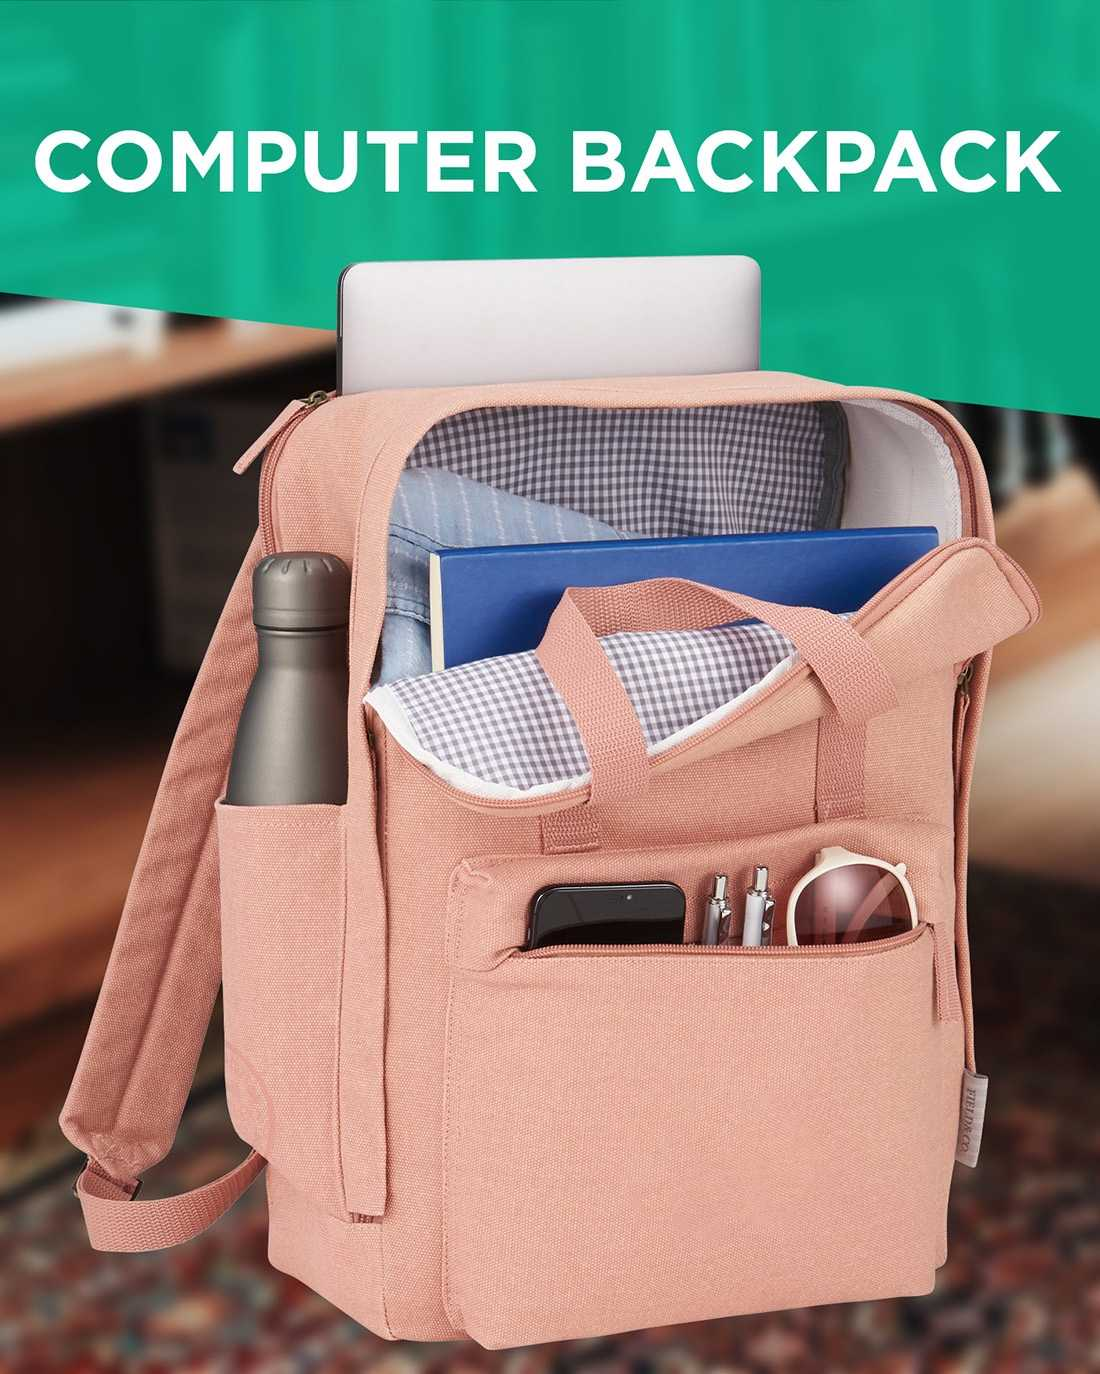 Computer Backpack AIM